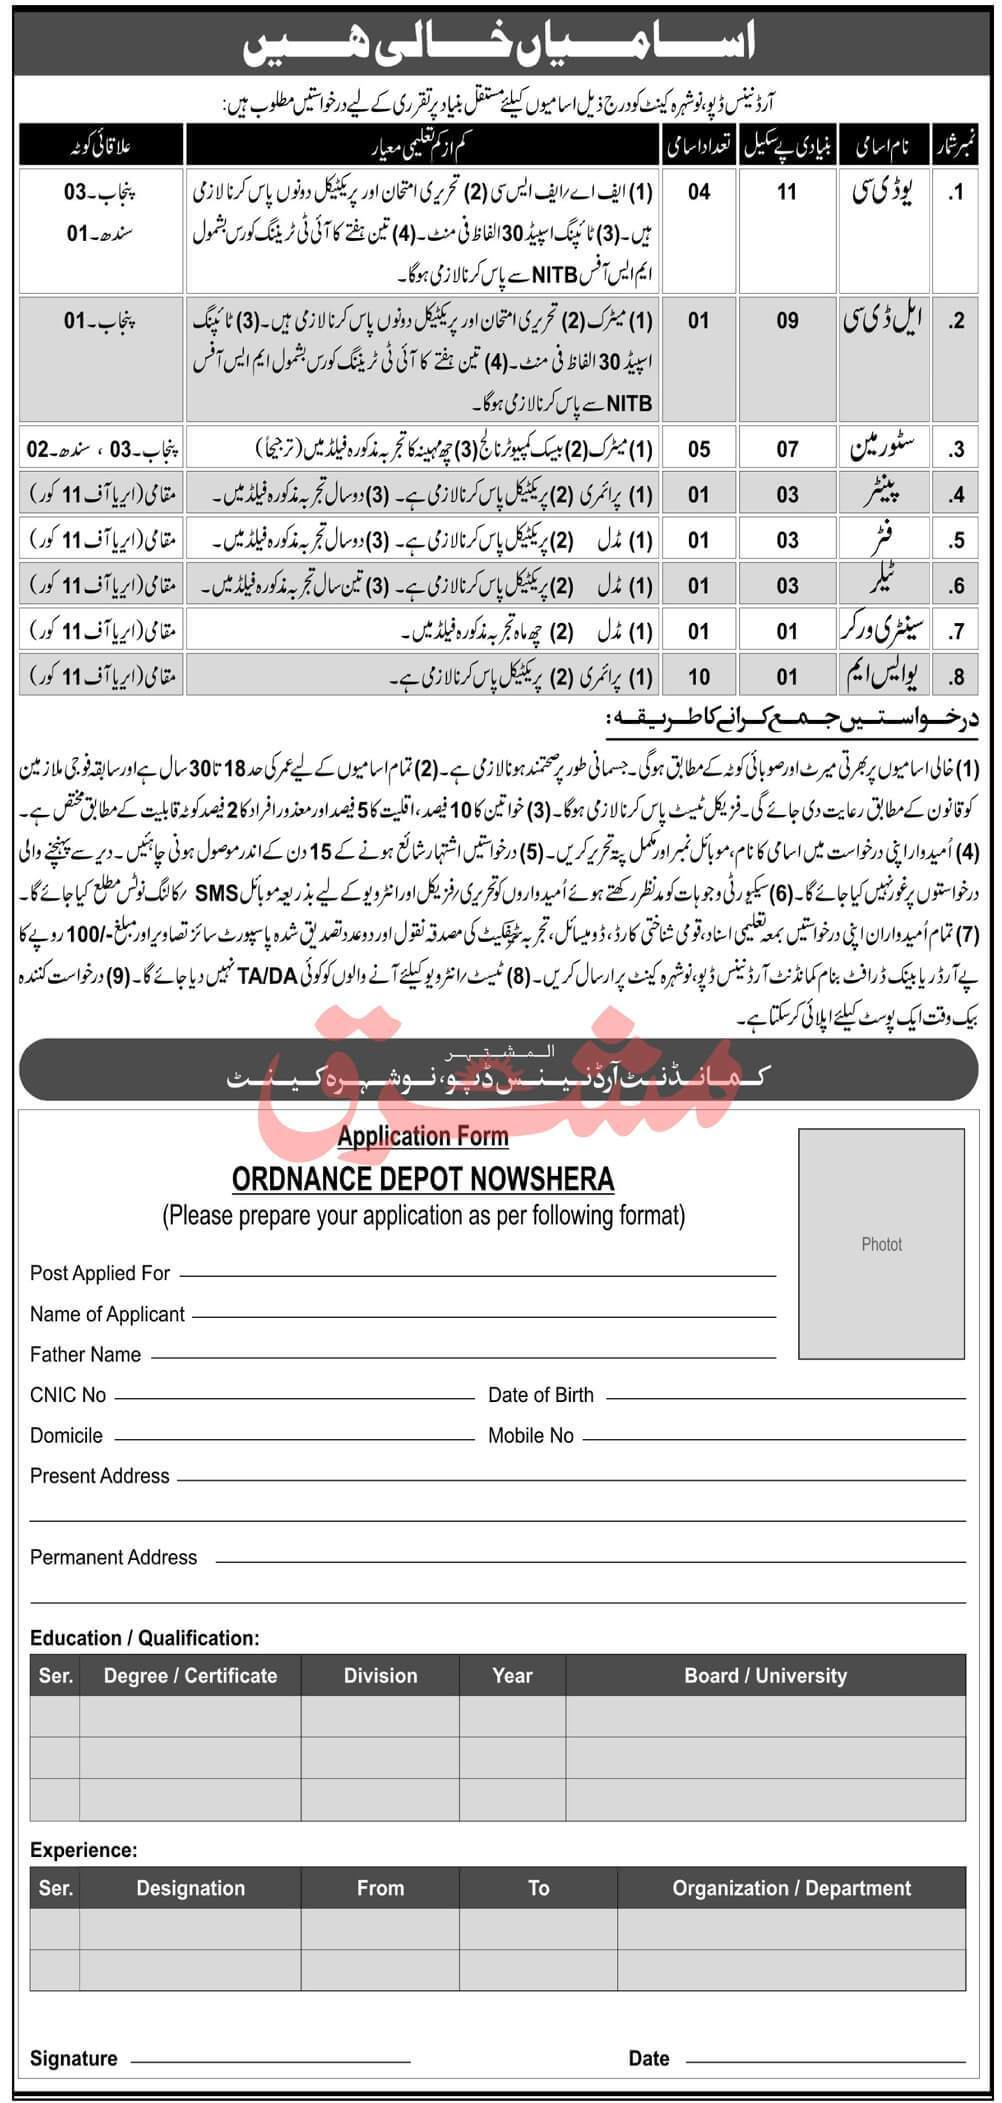 Pakistan Army Central Ordnance Depot COD Nowshera Cantt Jobs 2020